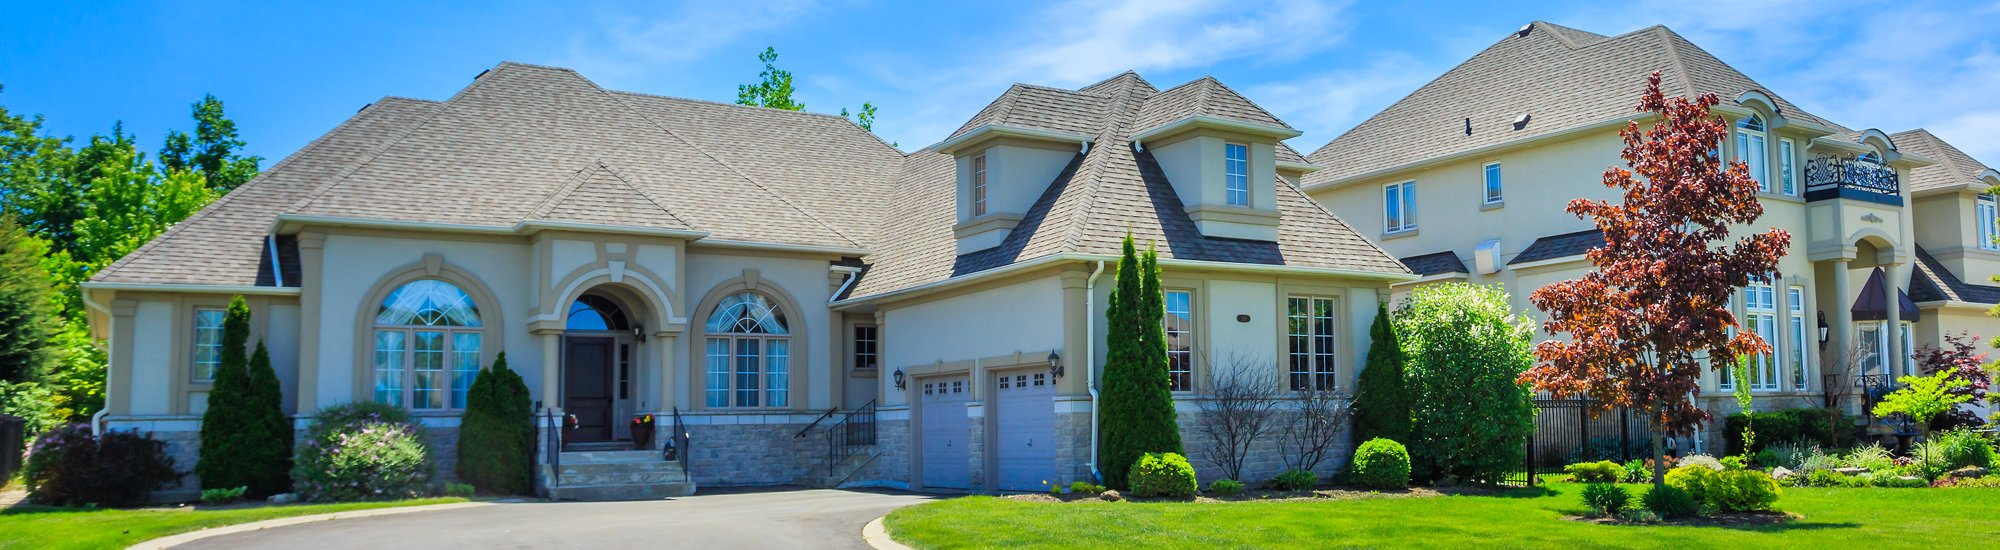 exterior-house-painting-stl